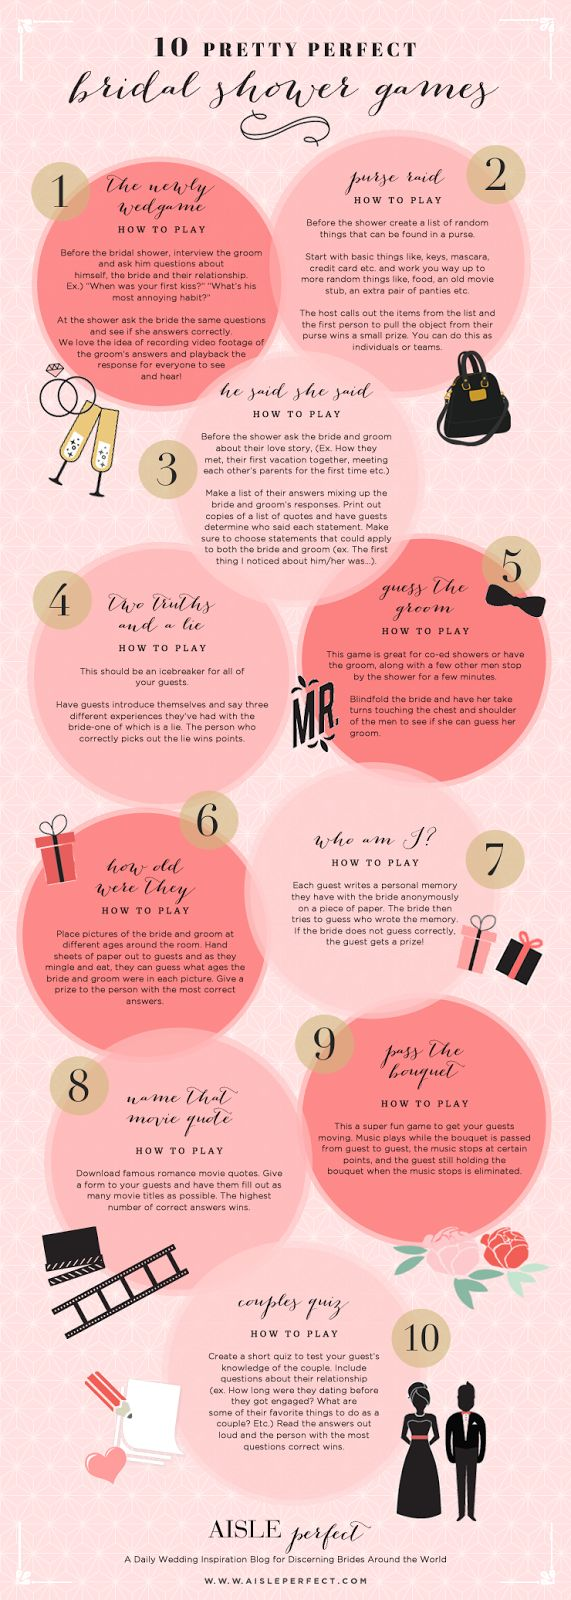 10 Bridal Shower Games || these actually sound fun :P